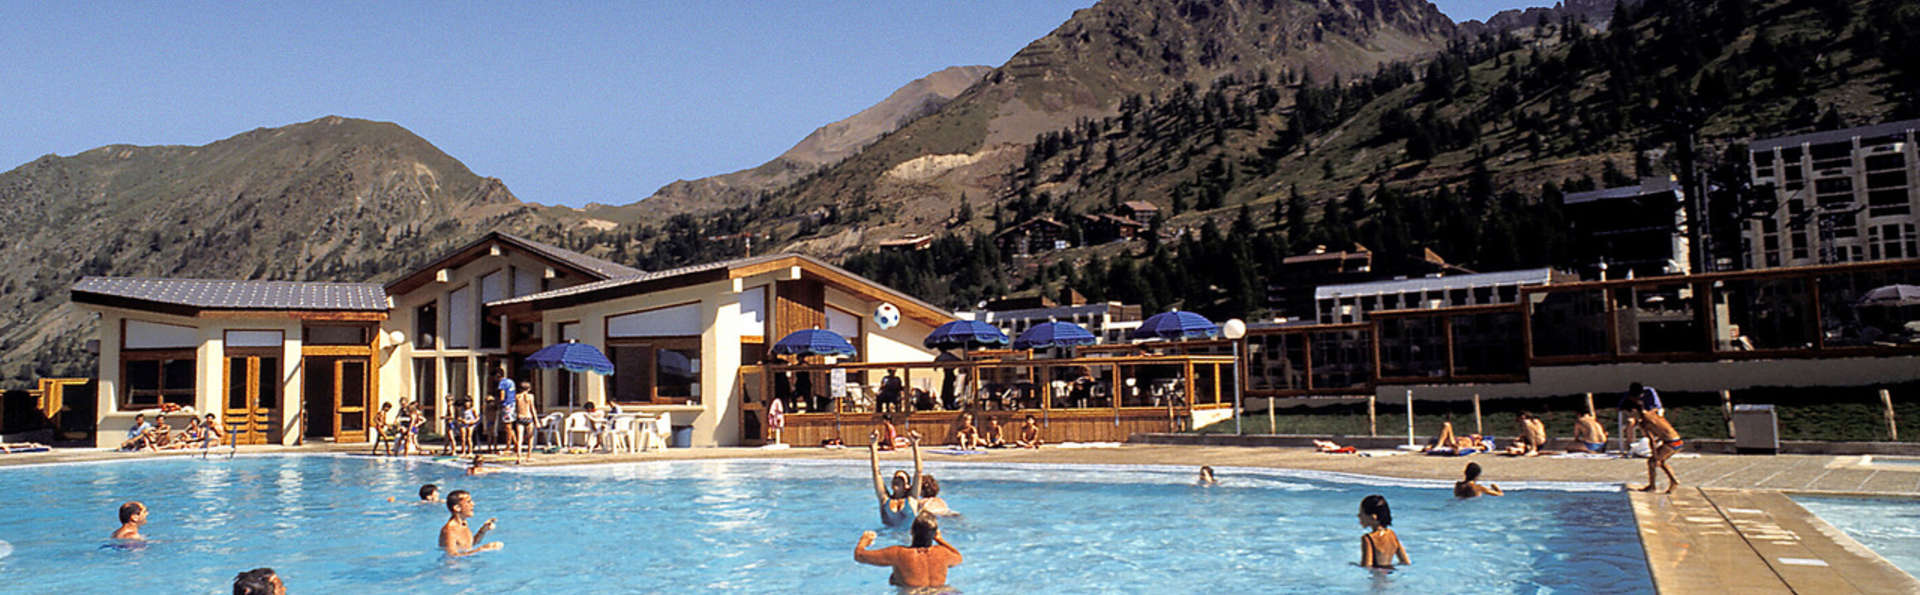 Week end montagne isola avec pension compl te pour 2 for Piscine isola 2000